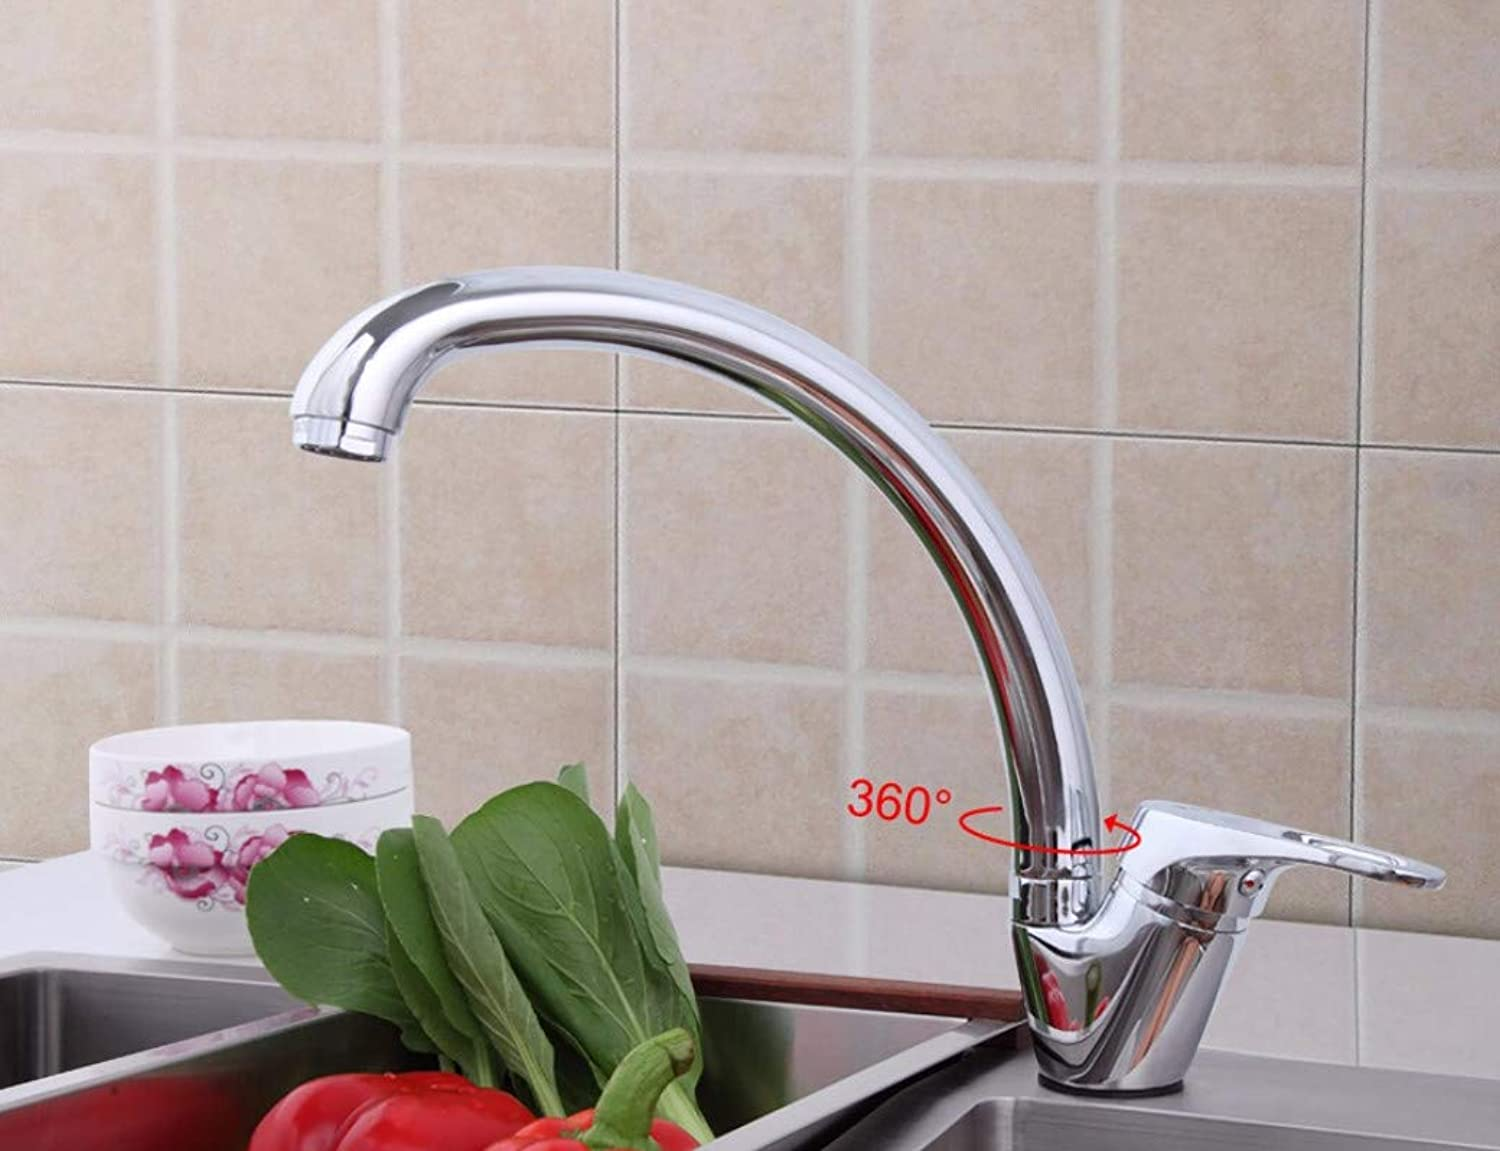 Decorry 360 Degree redation Brass Body Chrome Kitchen Sink Faucet Cold and hot Mixer tap Curved Outlet Pipe taps F4113-2